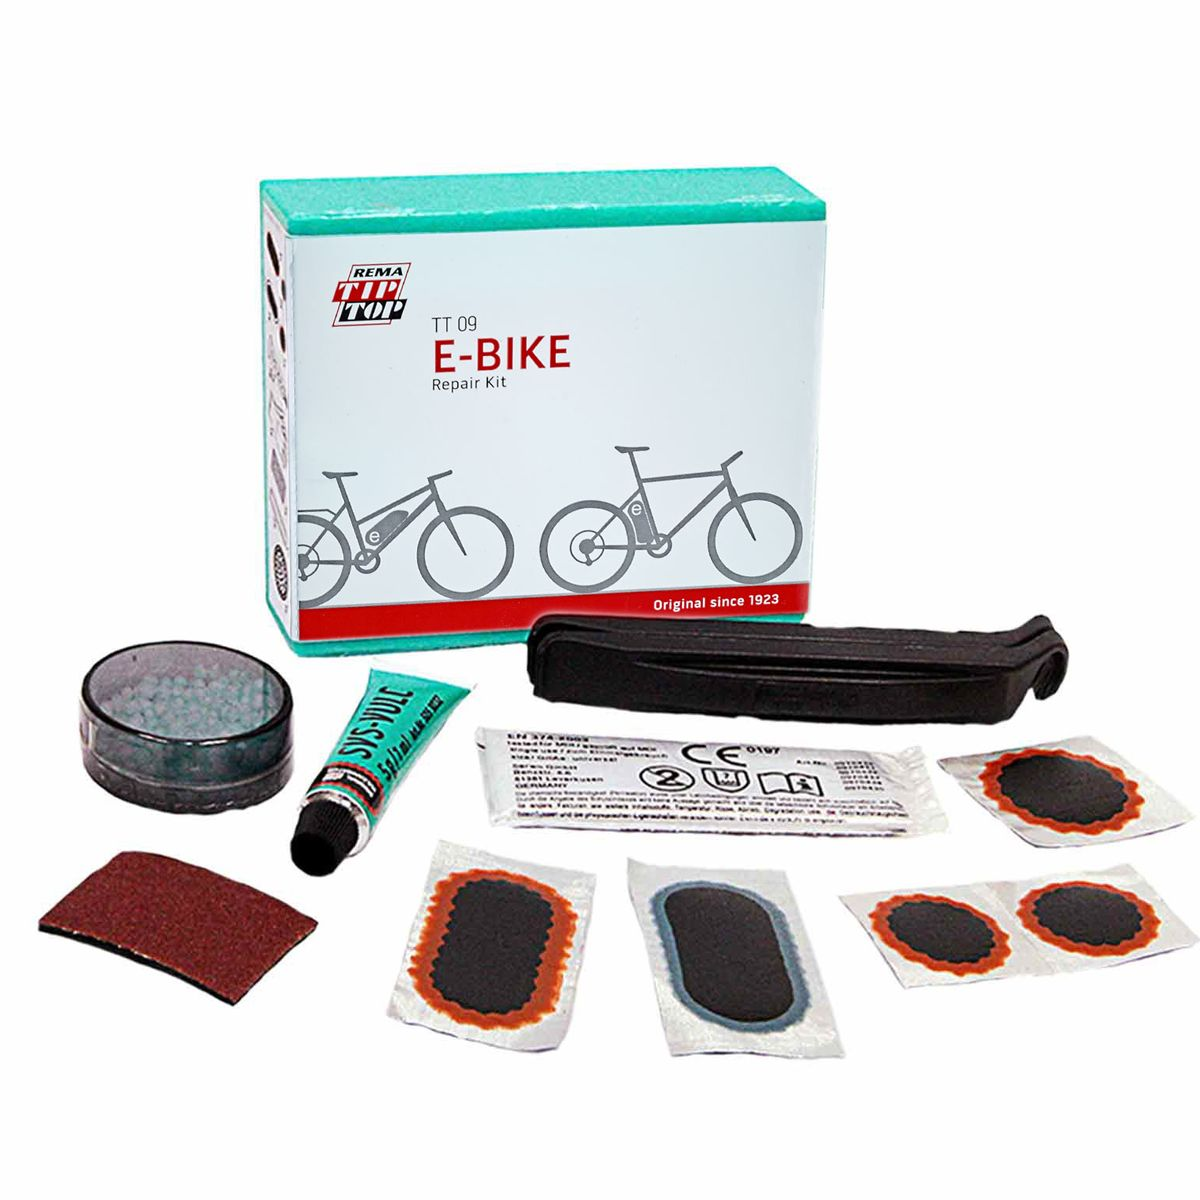 TT09 E-Bike Repair Kit